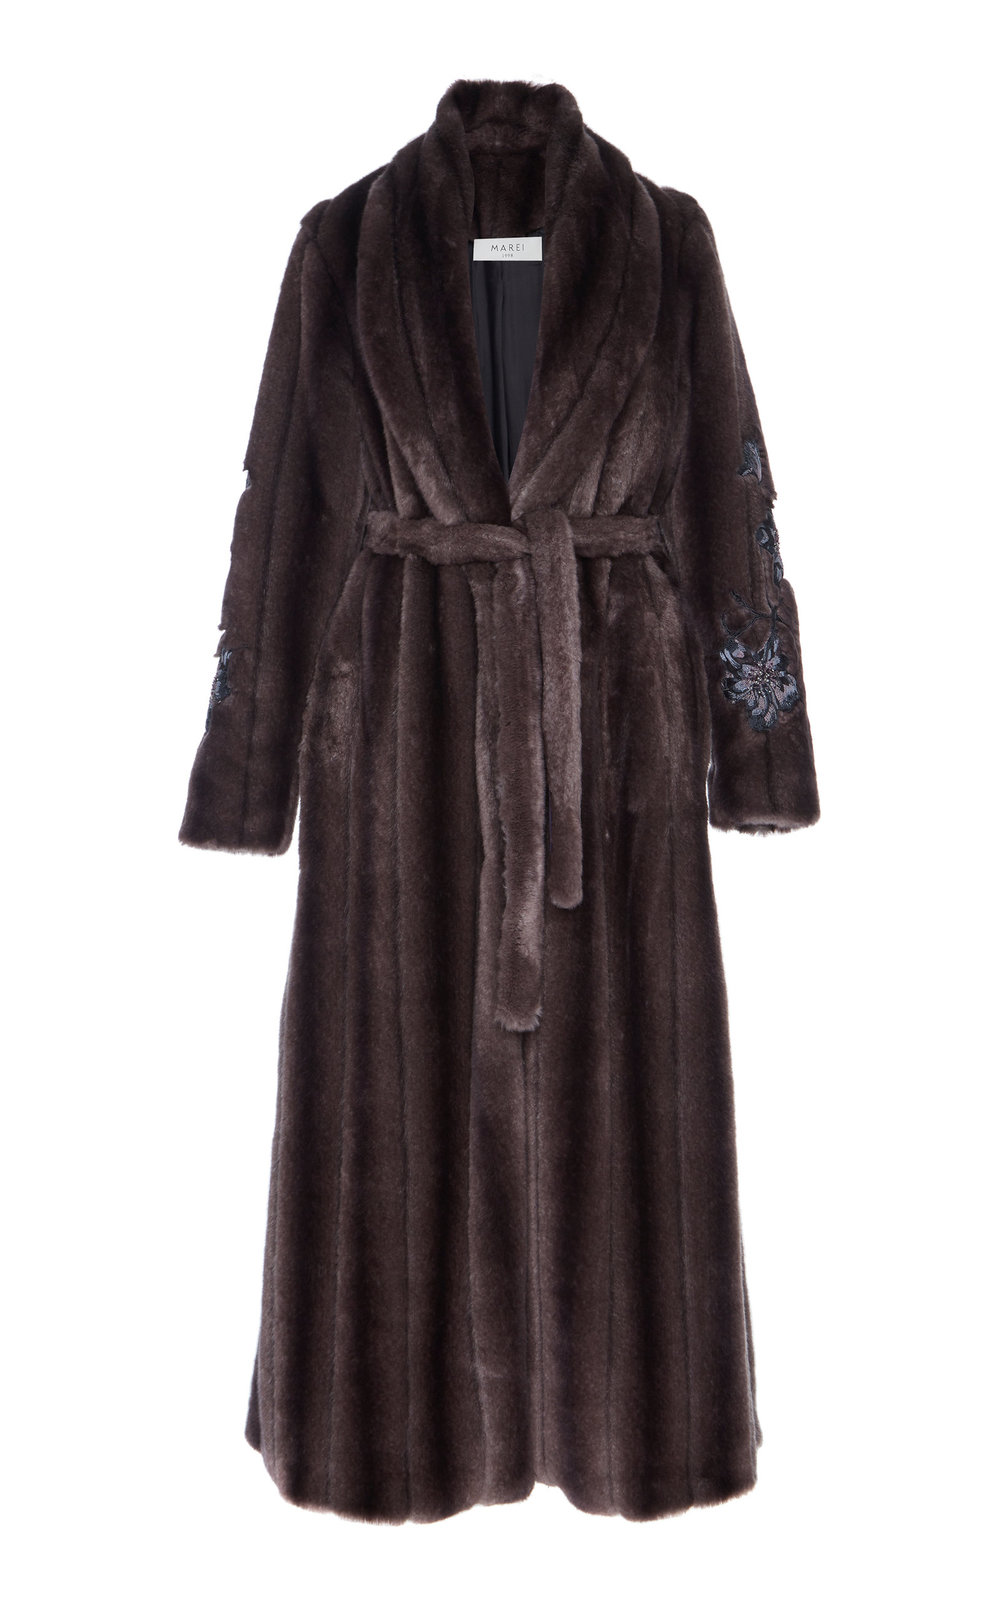 Saponaria Faux Fur Hand-Embroidered Coat - PURPLE  A true investment piece, this calf-length coat is a winter essential. Made from soft and fluffy faux fur, embellished with bead trims, it features a wrap silhouette and a notched lapel neckline. The loose fit makes it easy to layer.